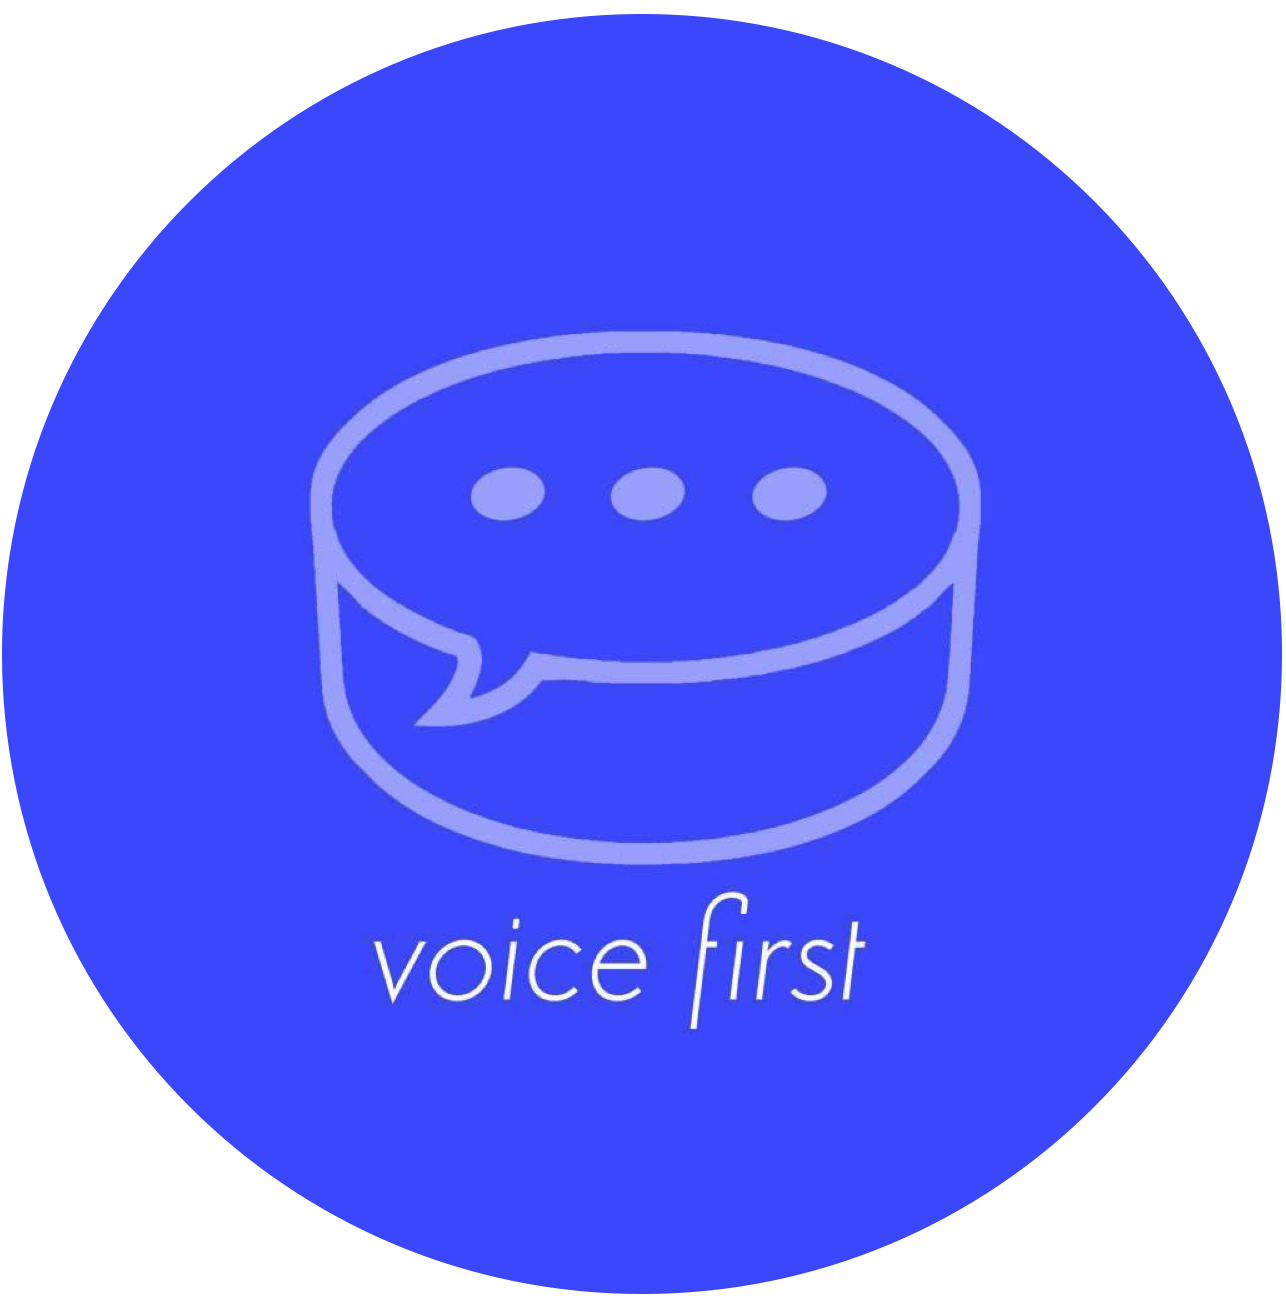 VoiceFirst_bluecircle.png